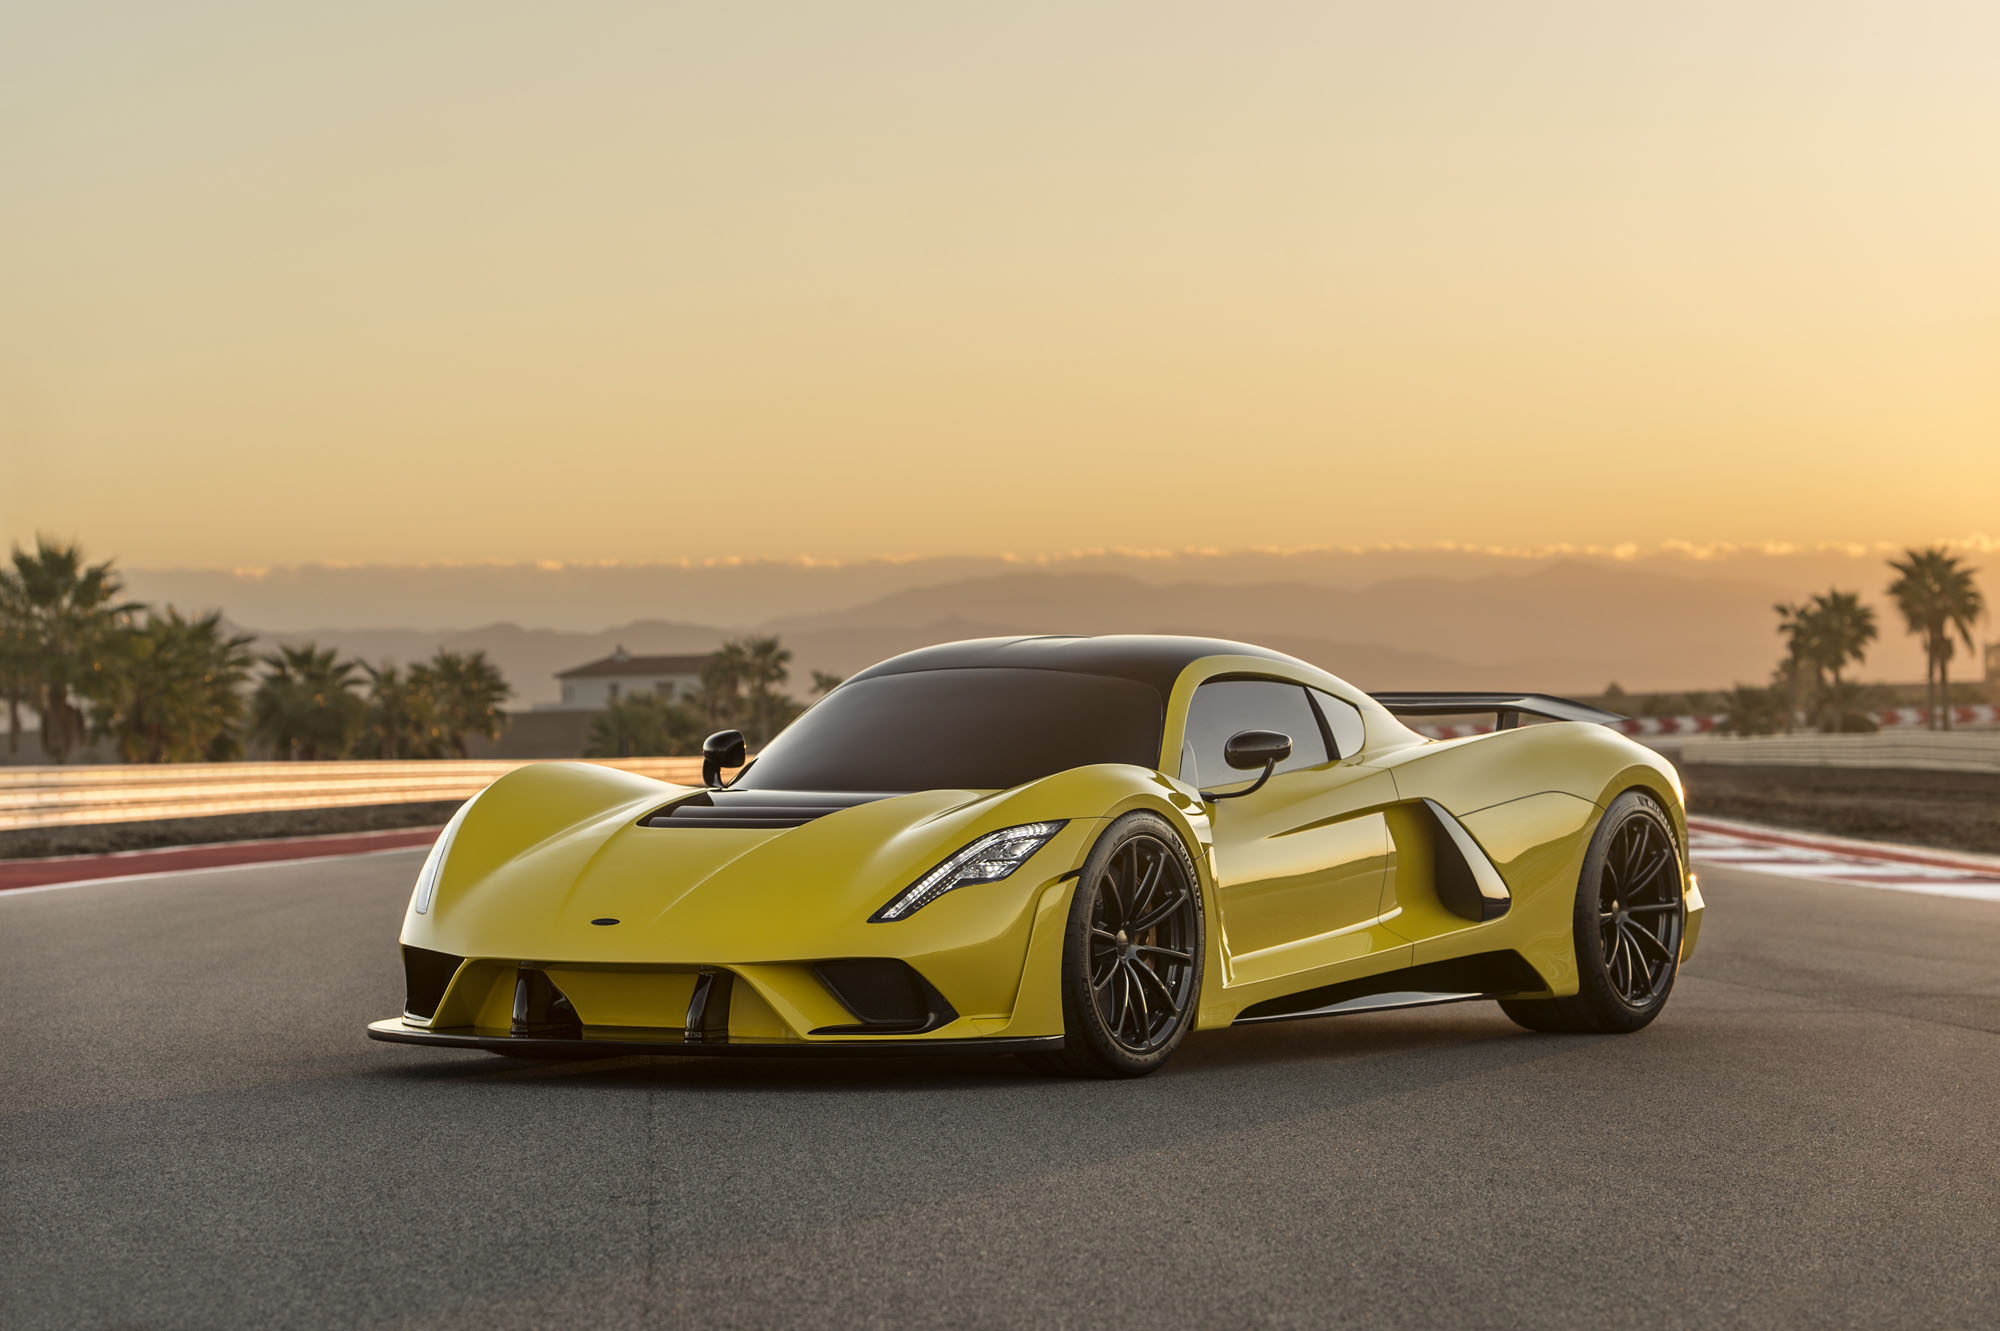 The Hennessey Venom F5 Concept debuted in late 2017, but the manufacturer still hasn't shown us the final production version of the hypercar